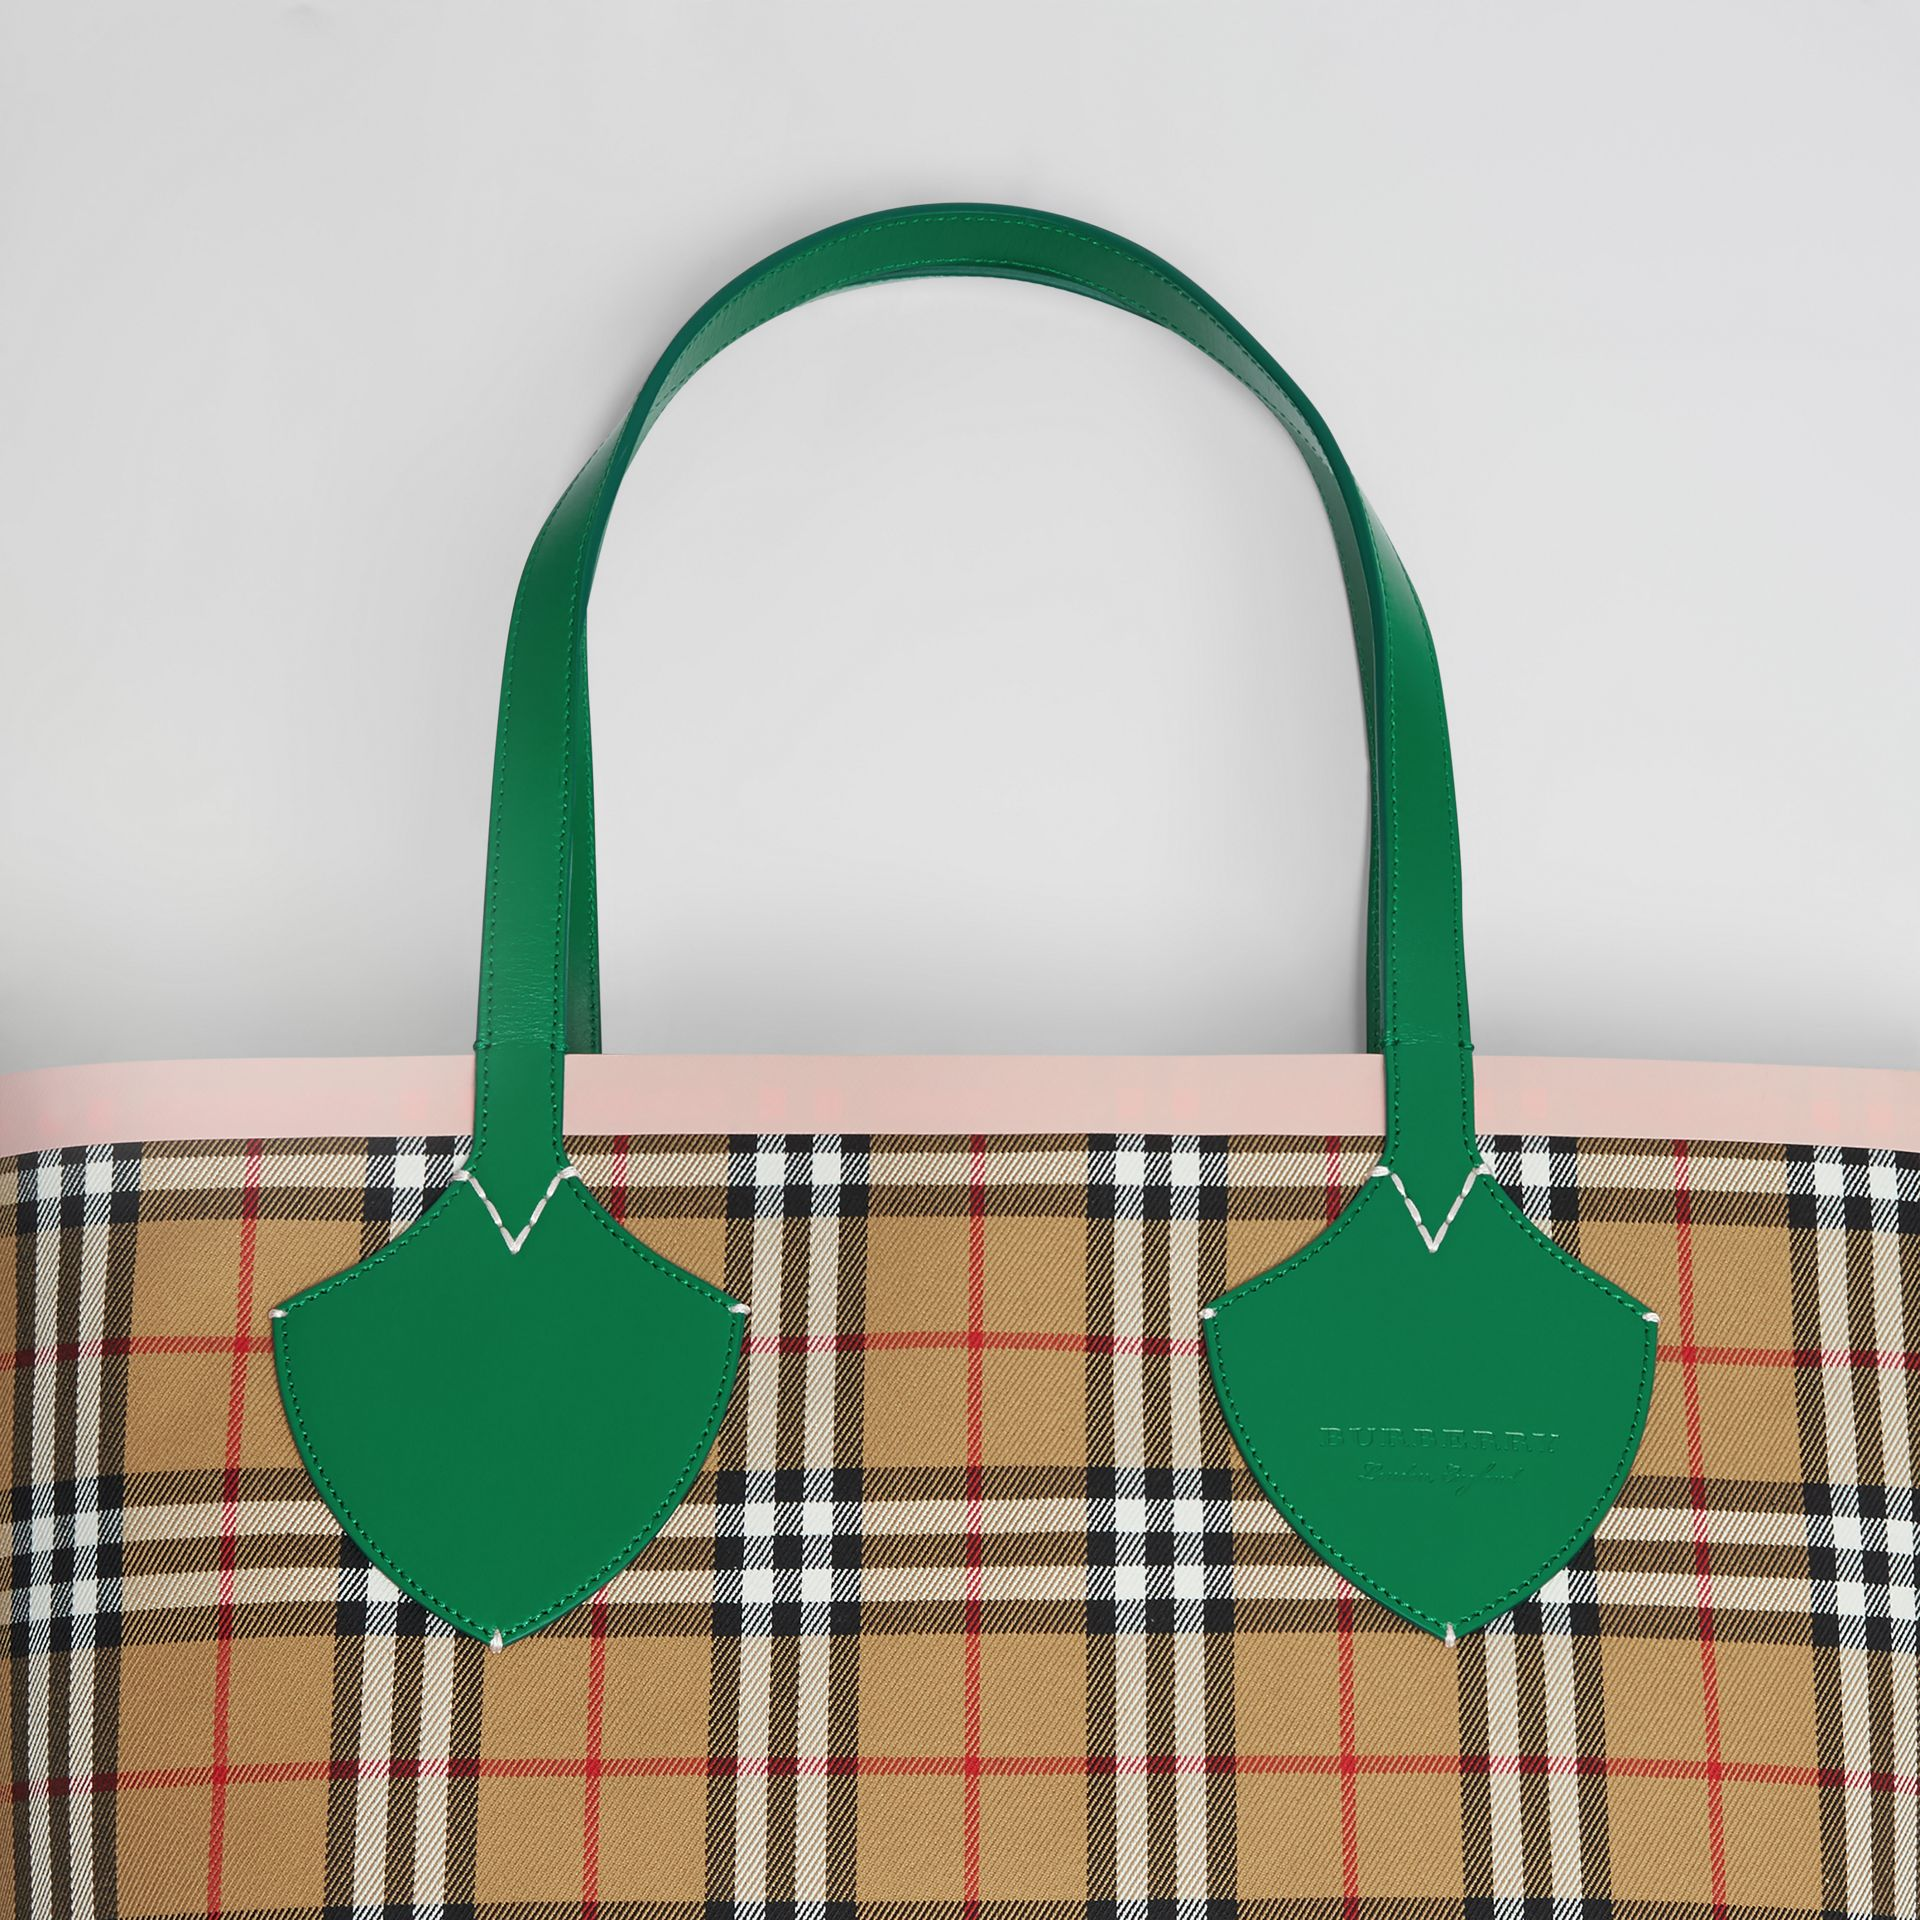 Sac tote The Giant réversible à motif Vintage check (Vert Sombre/abricot Rose) - Femme | Burberry Canada - photo de la galerie 1